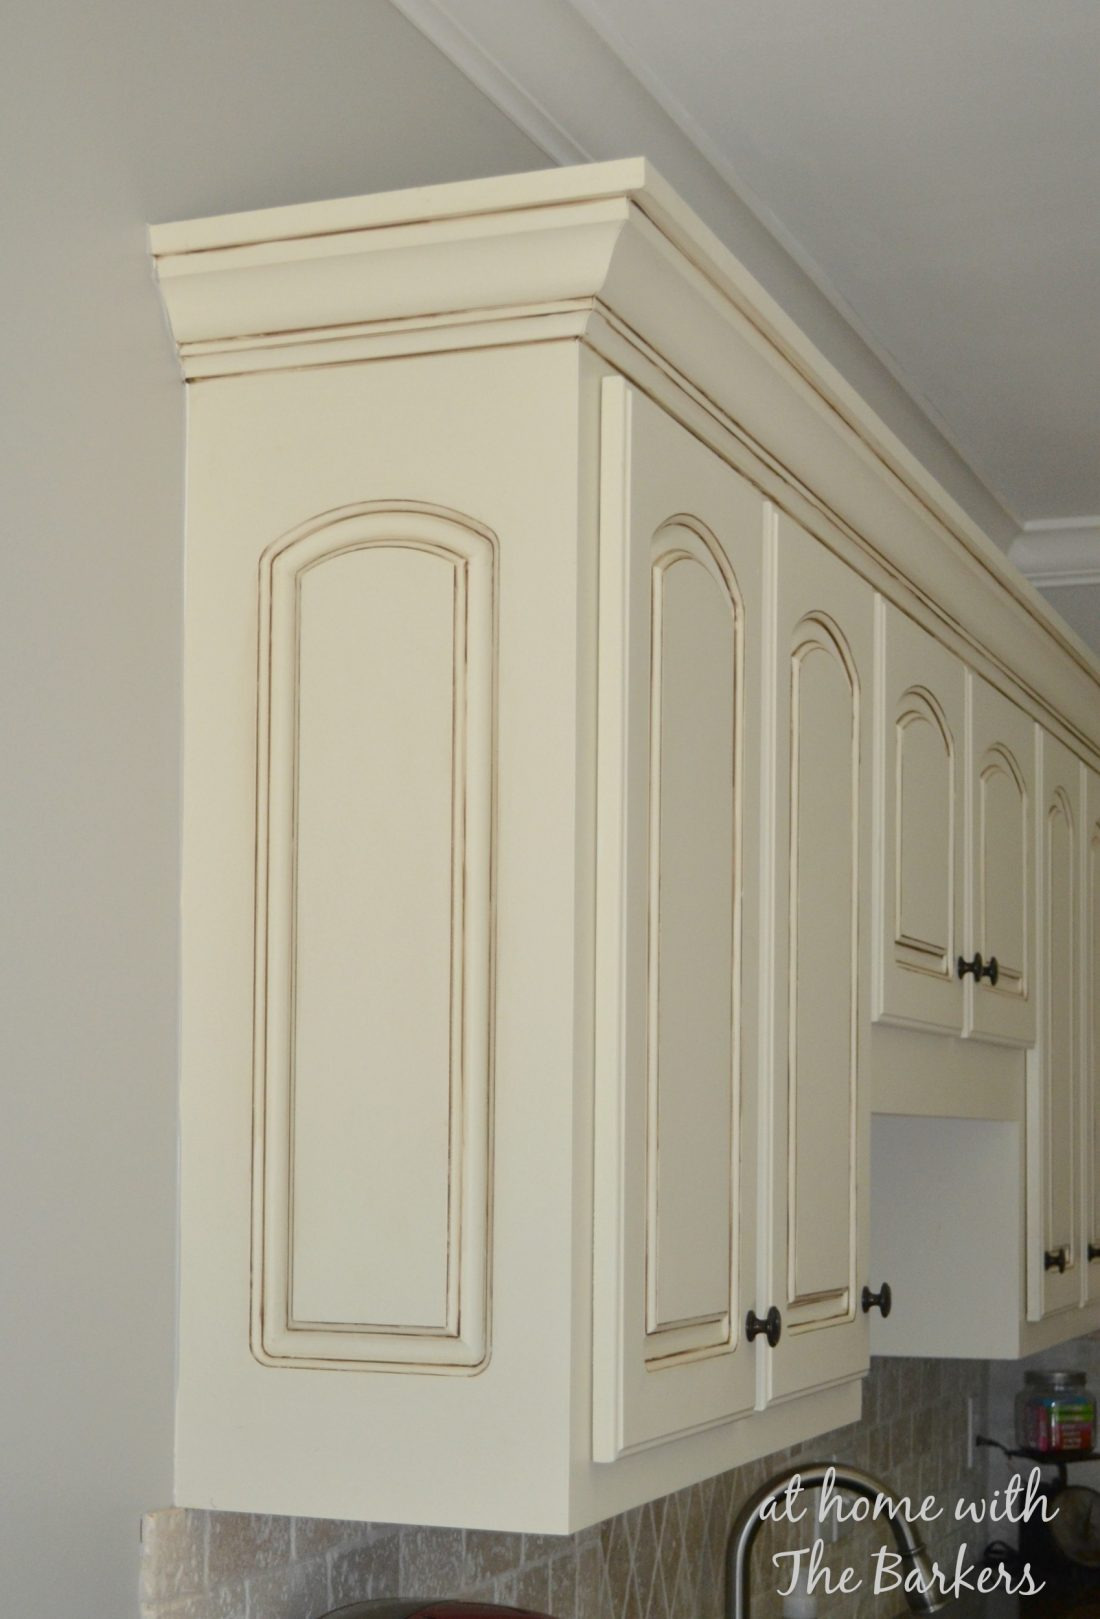 Barker Cabinet Doors Awesome How to Glaze Cabinets at Home with the Barkers